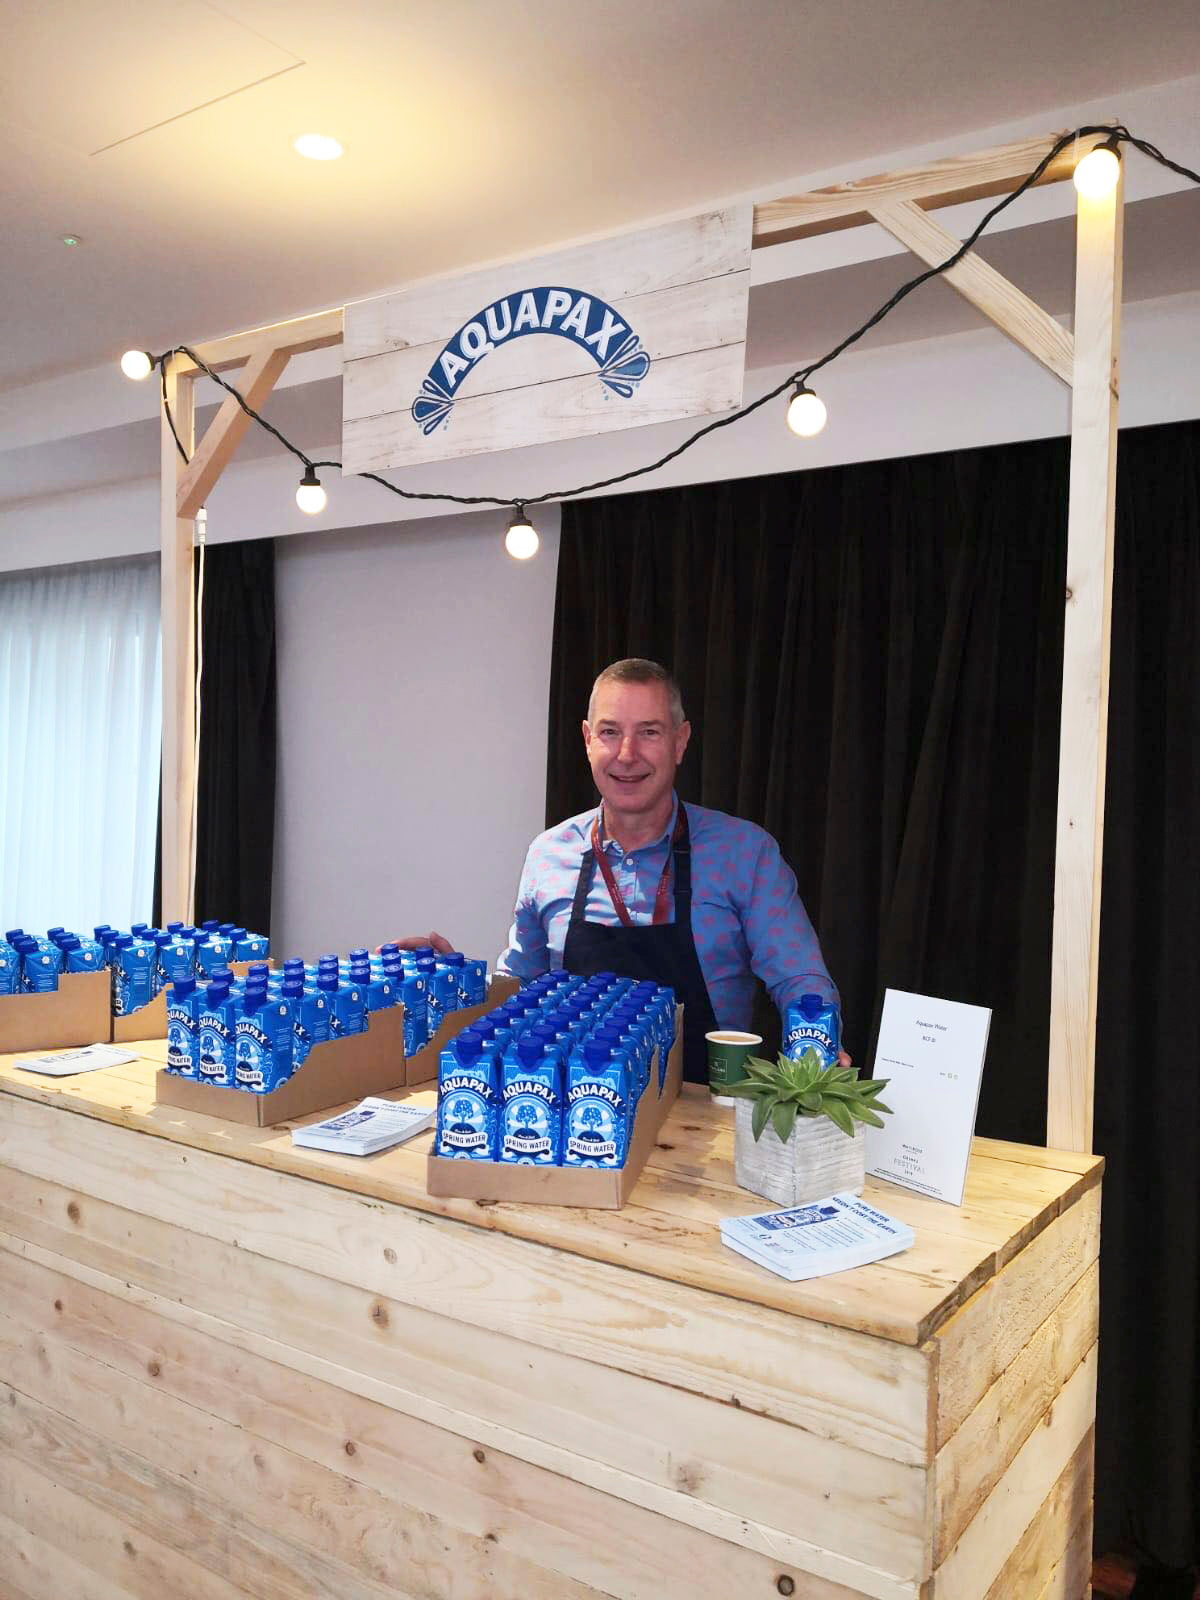 aquapax water Waitrose drinks festival